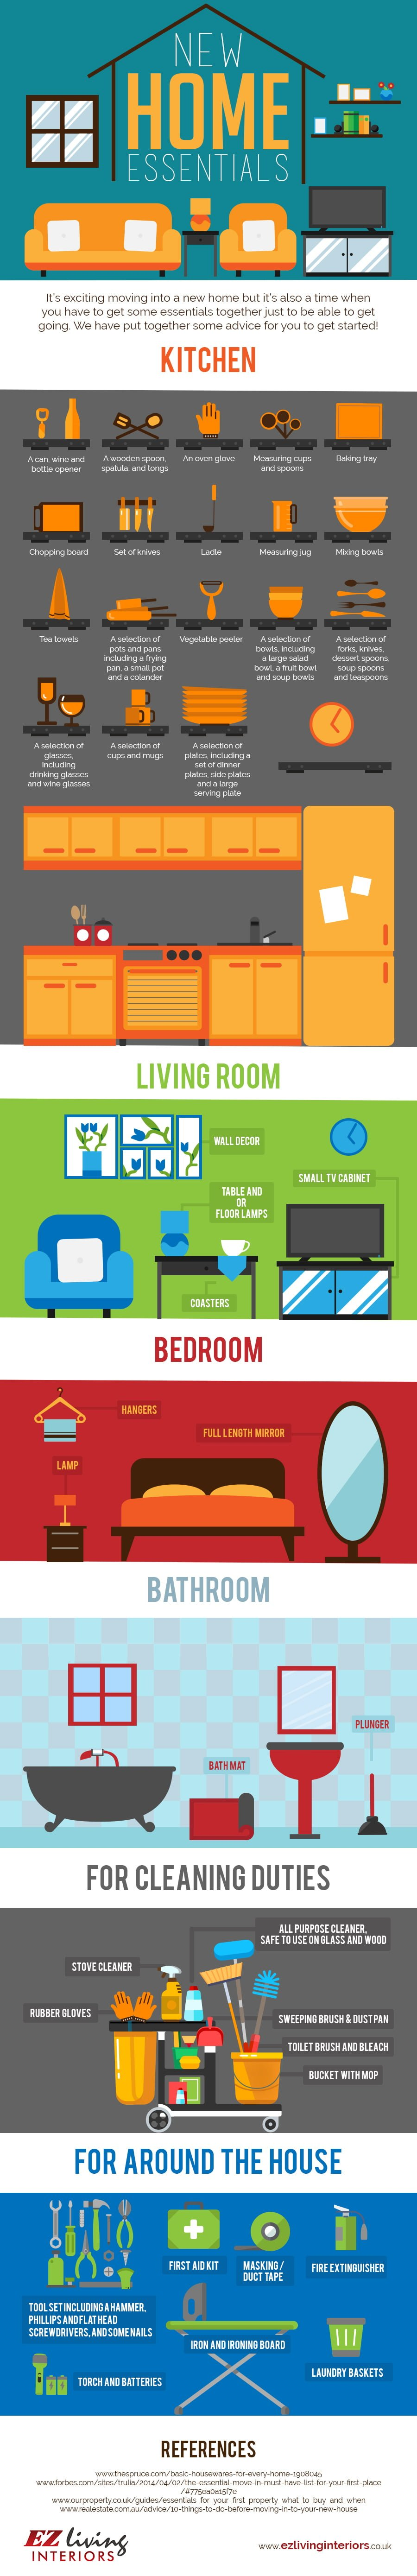 New Home Essentials - Infographic